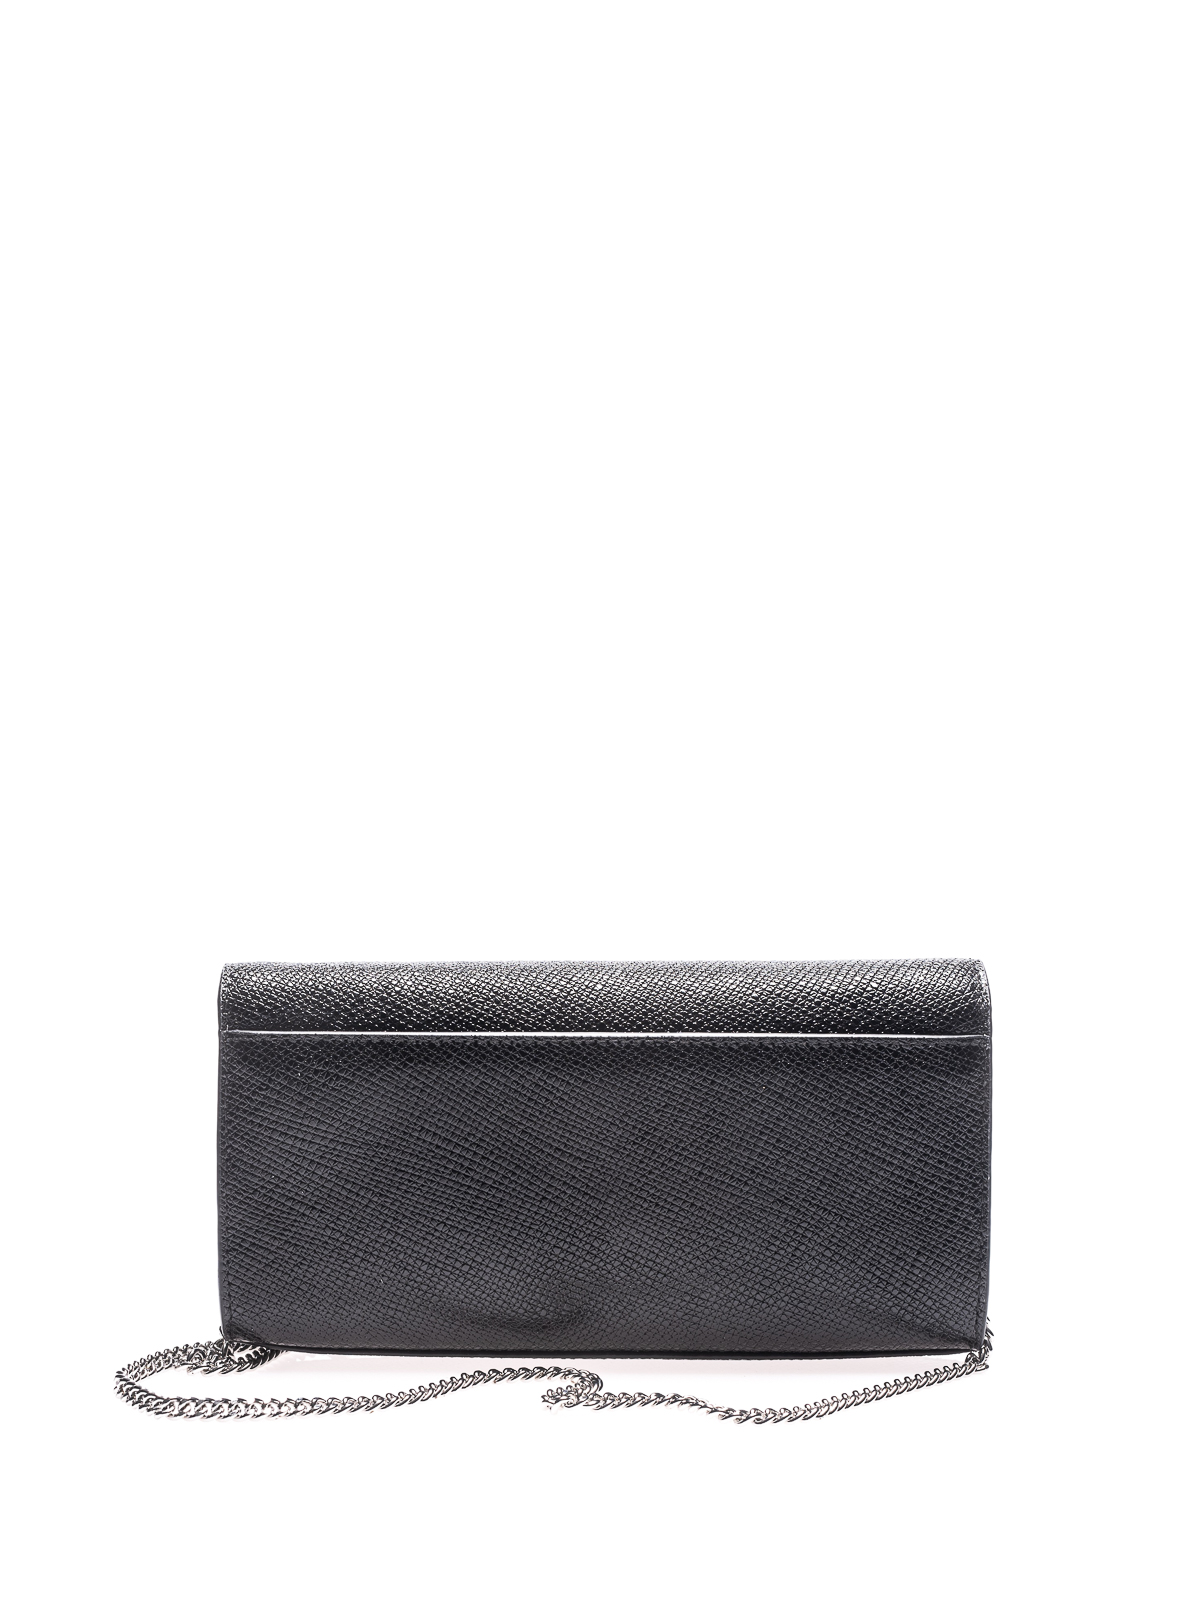 Michael Kors Mott grainy leather envelope clutch